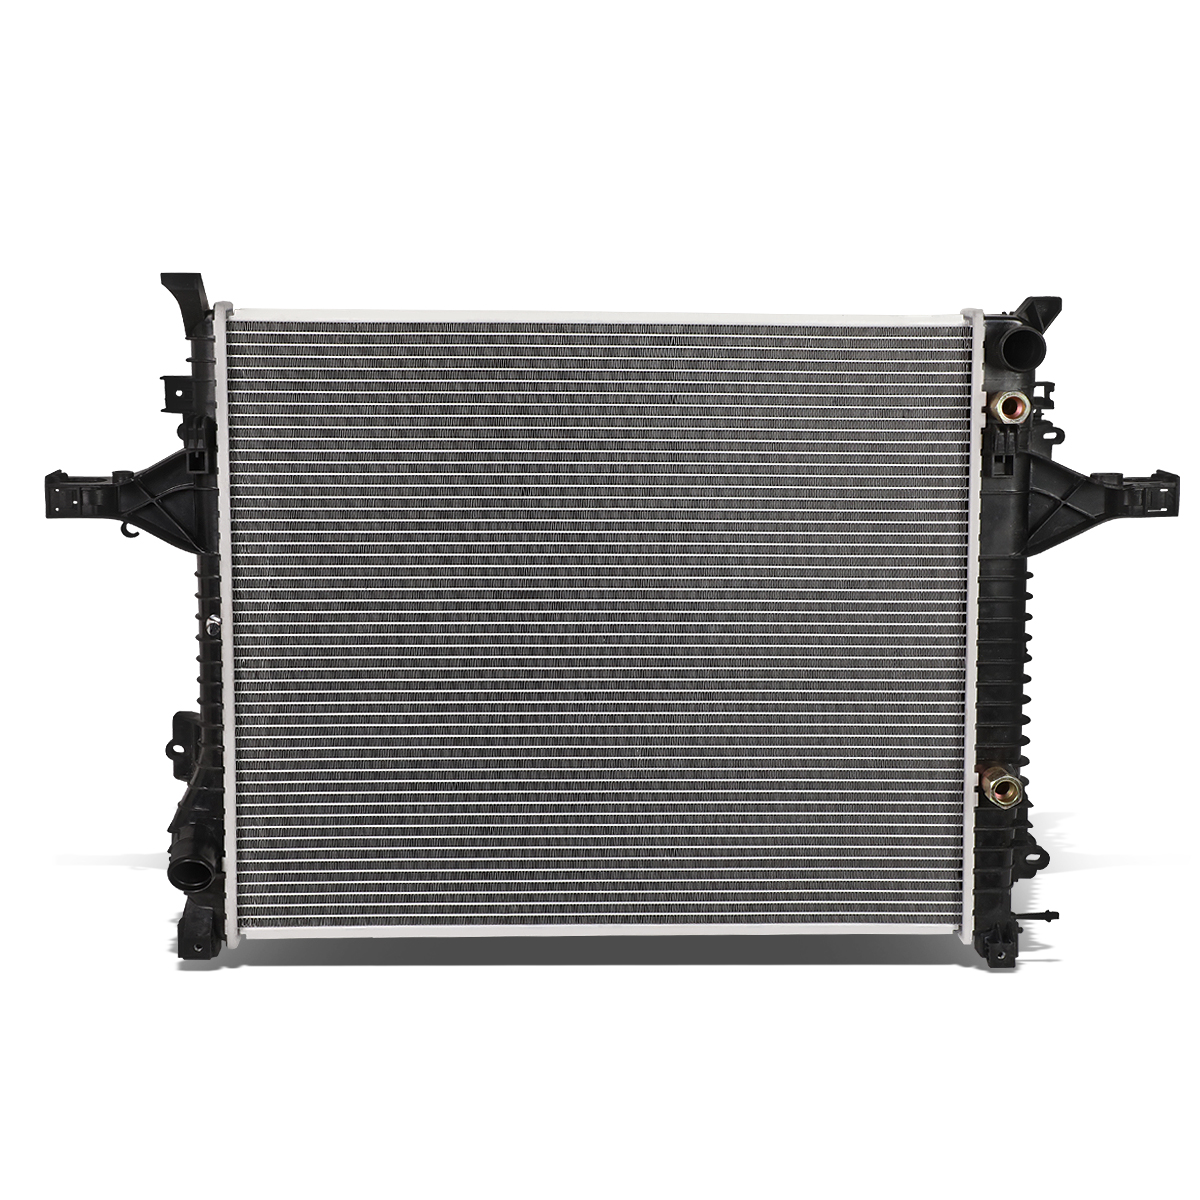 FOR 03-14 VOLVO XC90//S80 3.2 AT OE STYLE ALUMINUM CORE COOLING RADIATOR DPI 2878